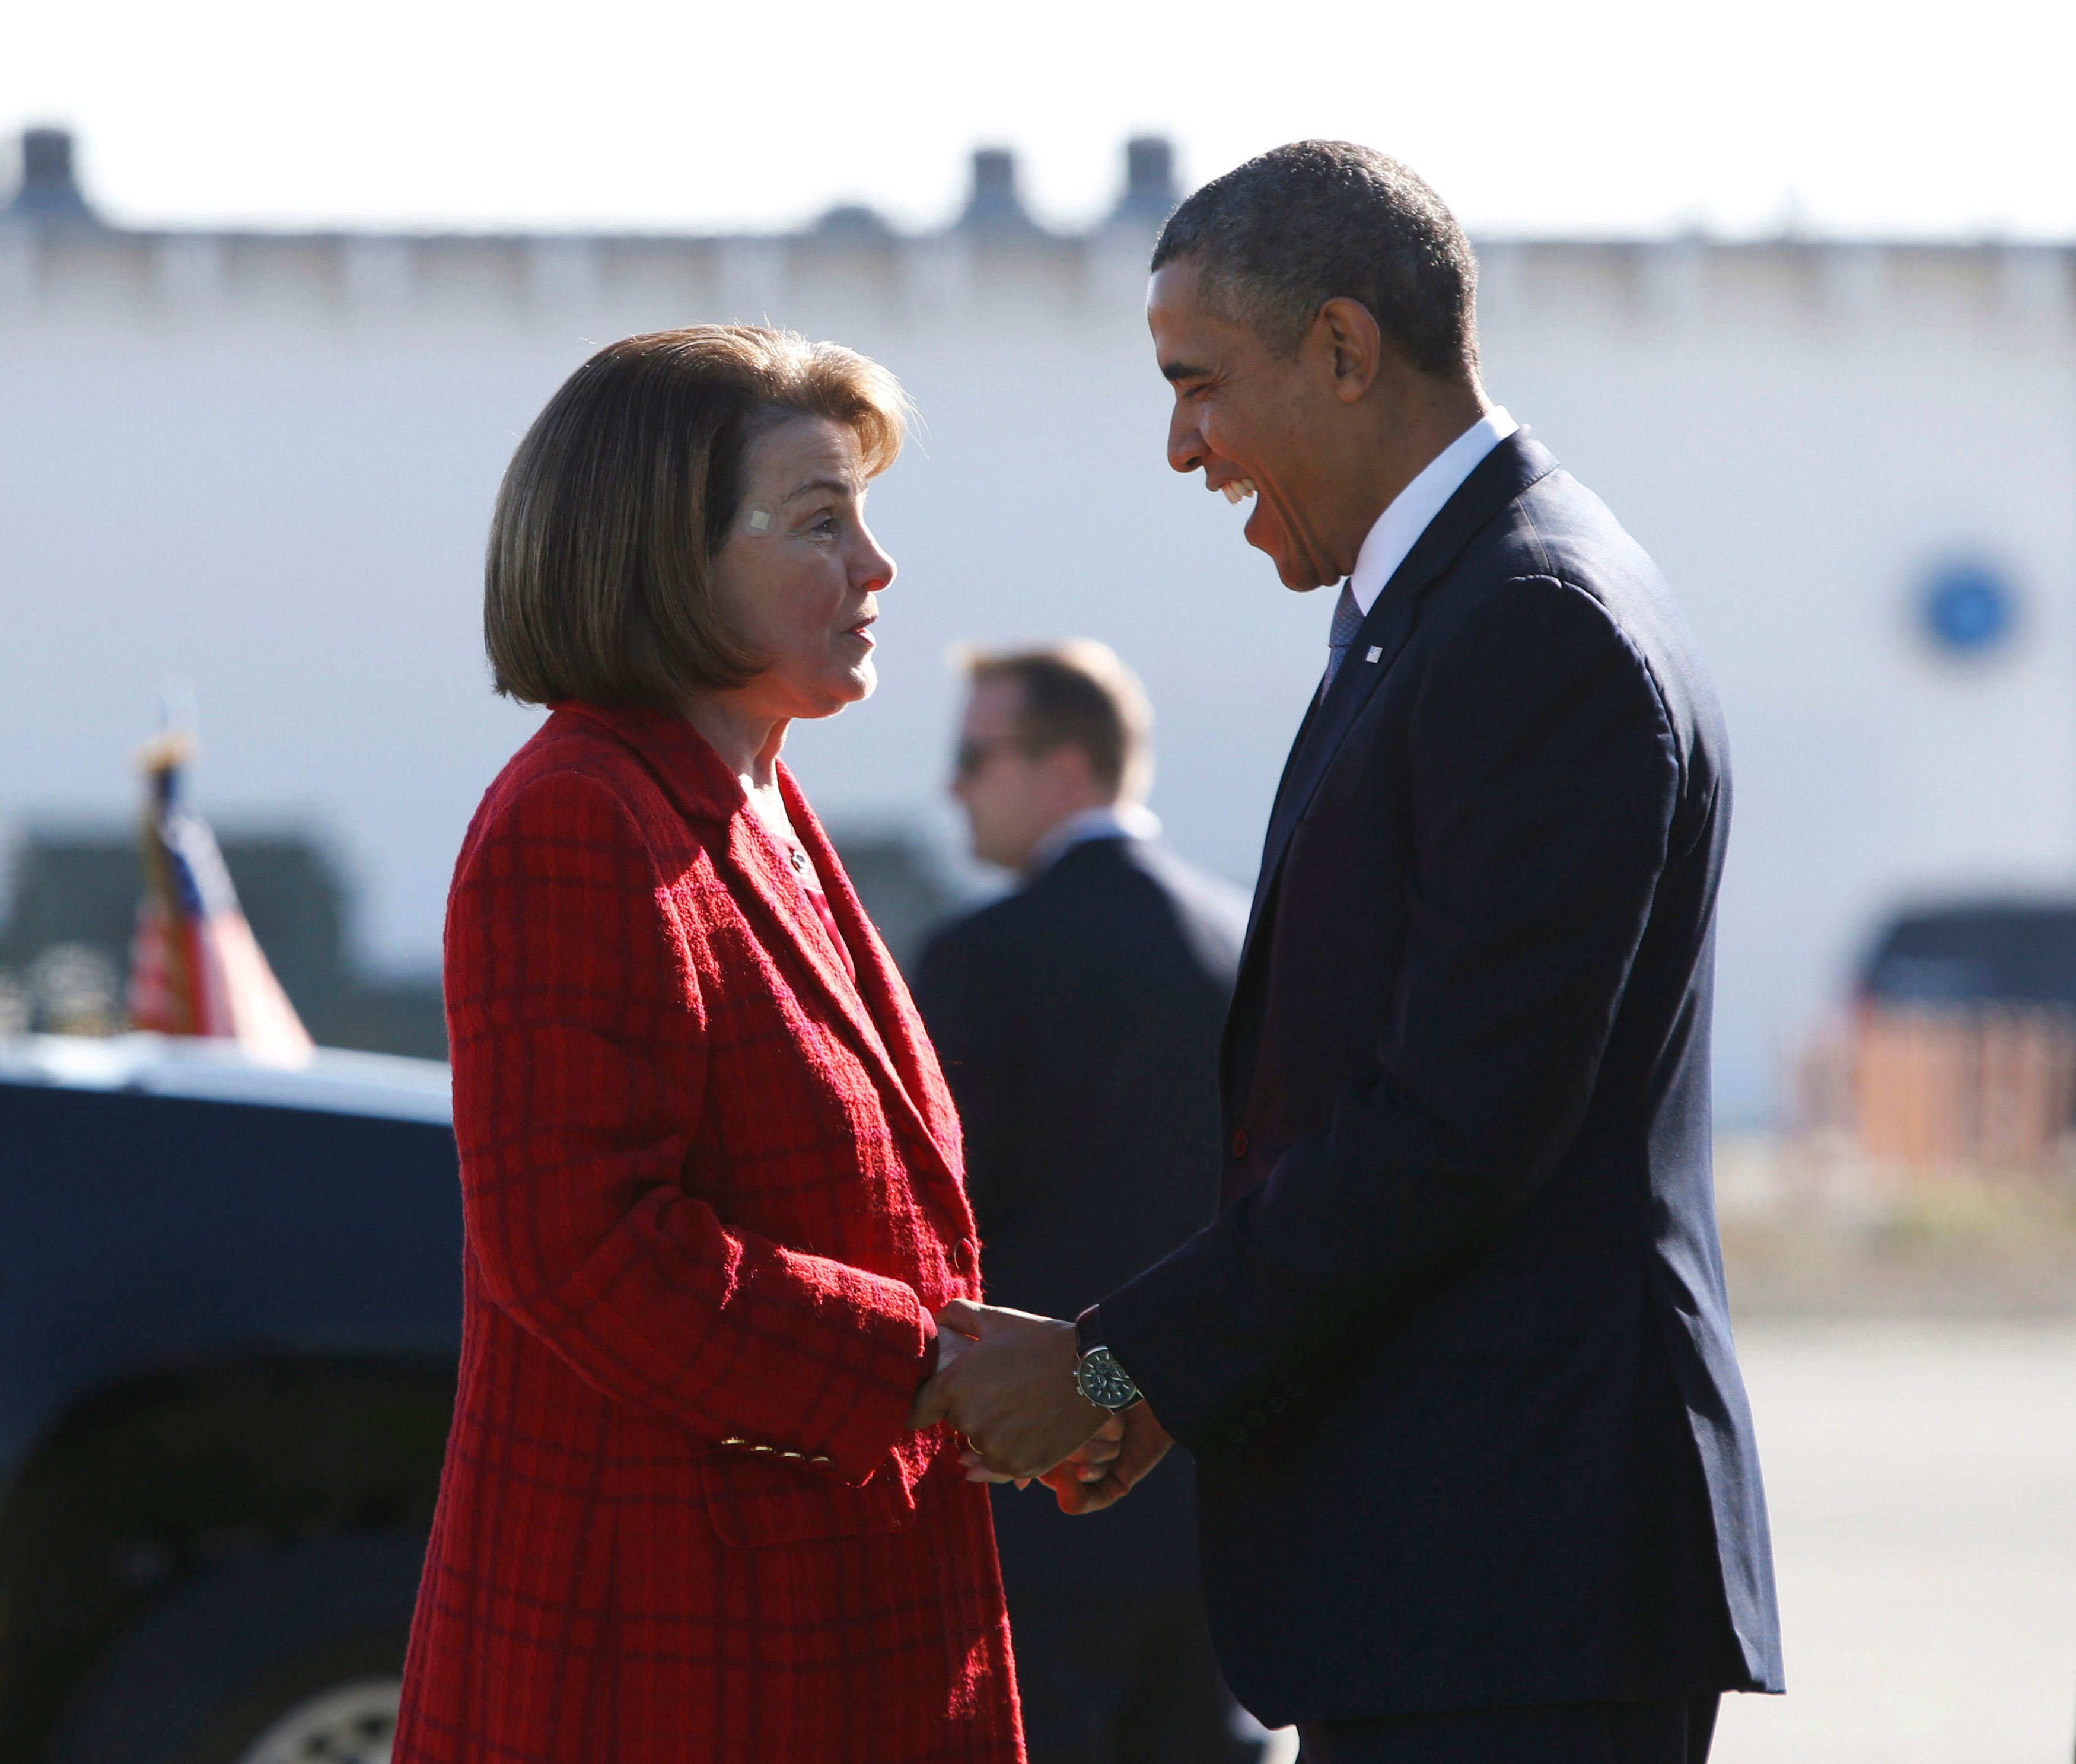 Former President Barack Obama, pictured here being greeted by Sen. Dianne Feinstein (D-Calif.) in San Francisco in November 2